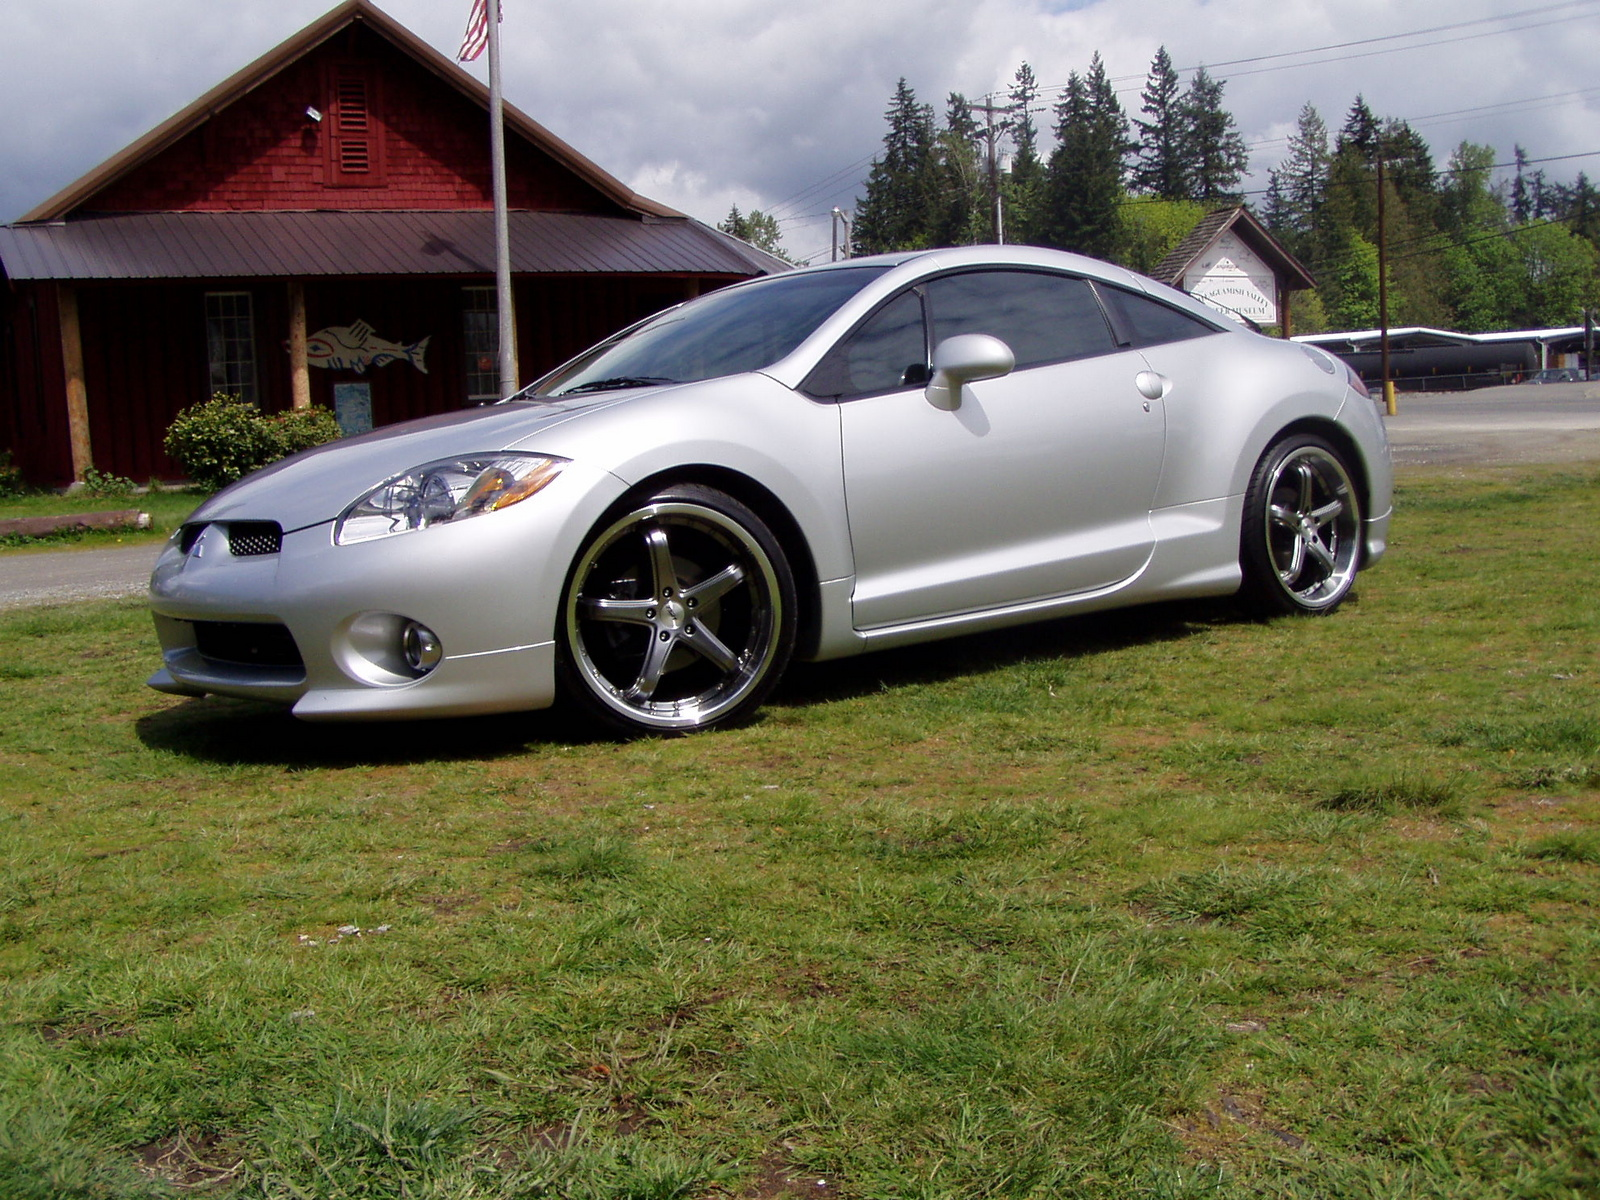 eclipse car 2006 custom - photo #31